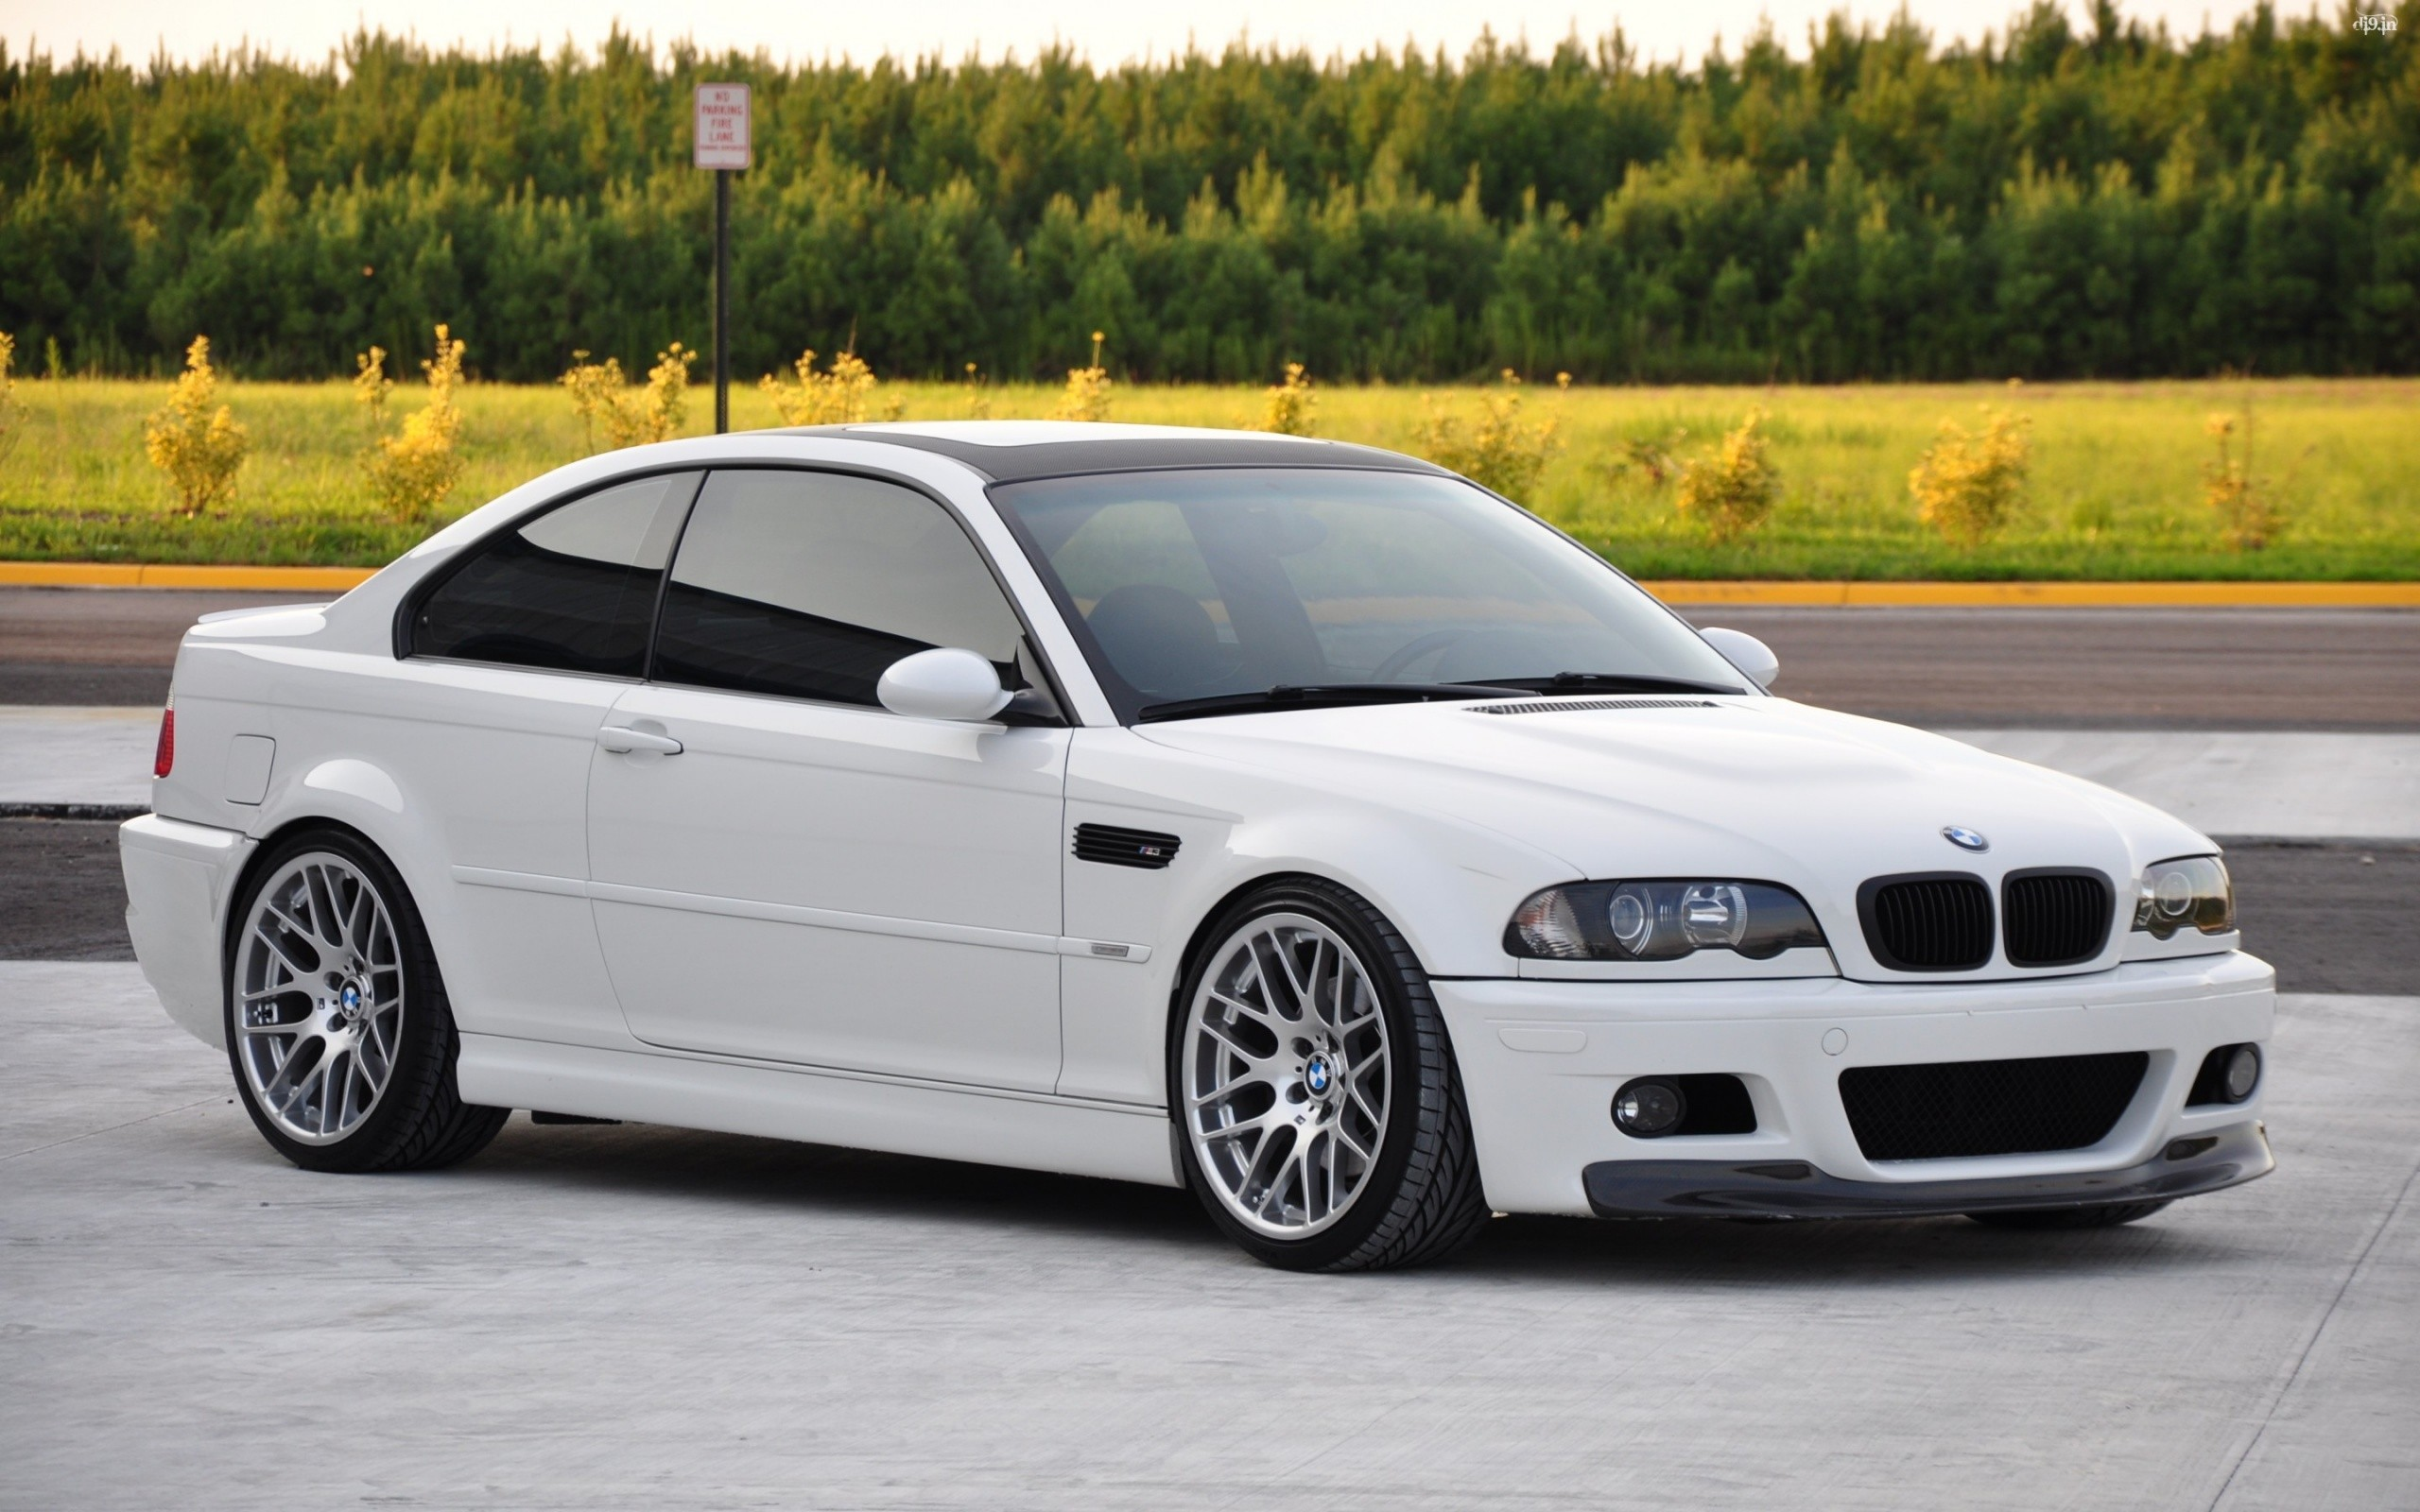 Killzone Shadow Fall Mobile Wallpaper Bmw M3 E46 Wallpaper Gallery Wallpaper And Free Download